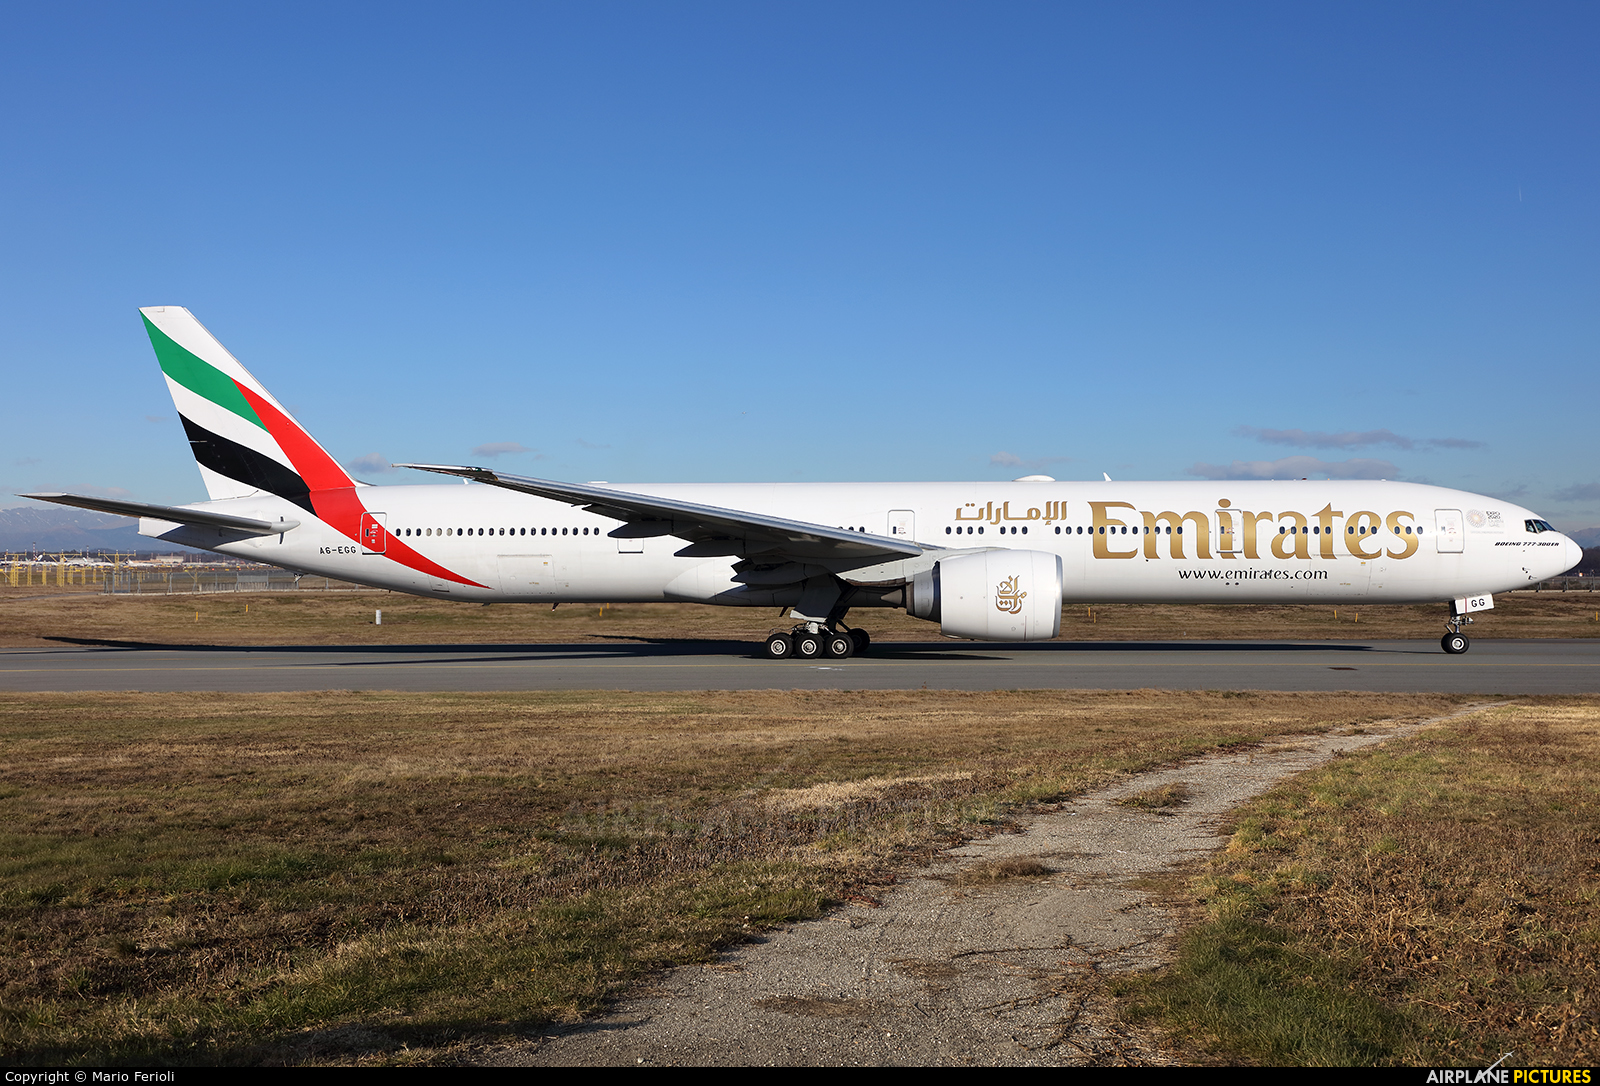 Emirates Airlines A6-EGG aircraft at Milan - Malpensa